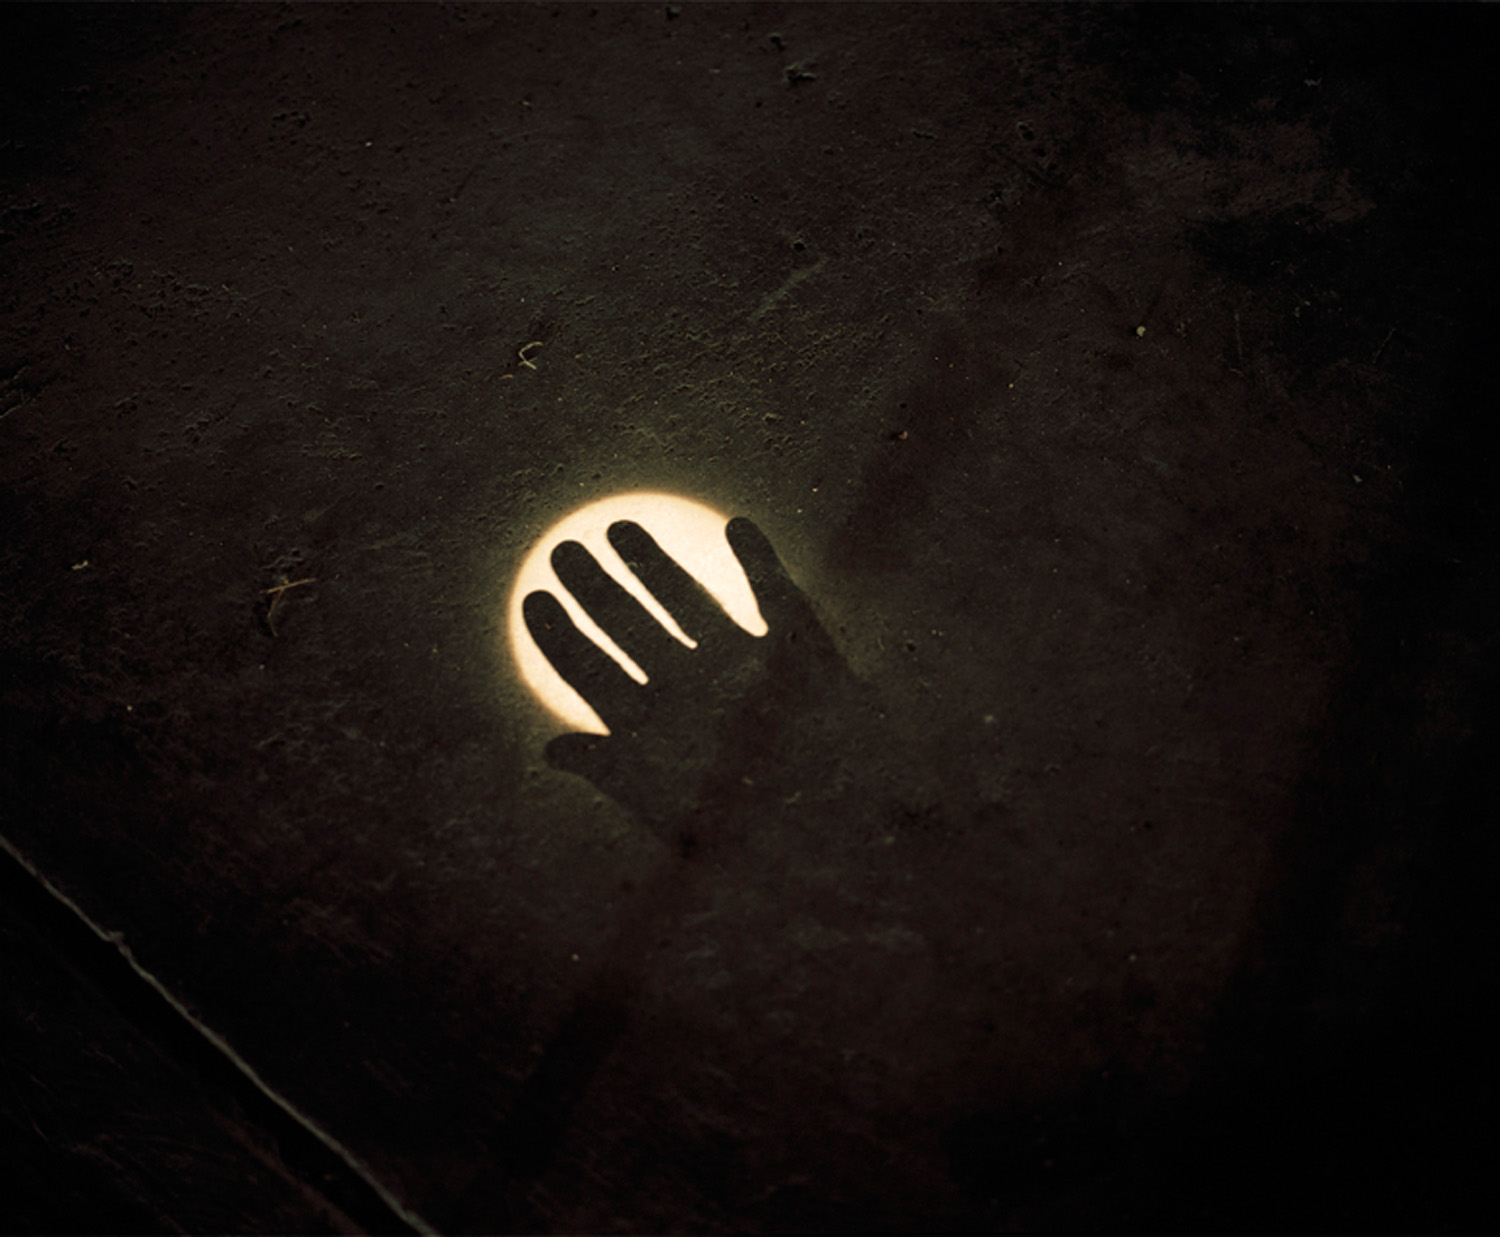 Image of sun cast by hole in hangar roof